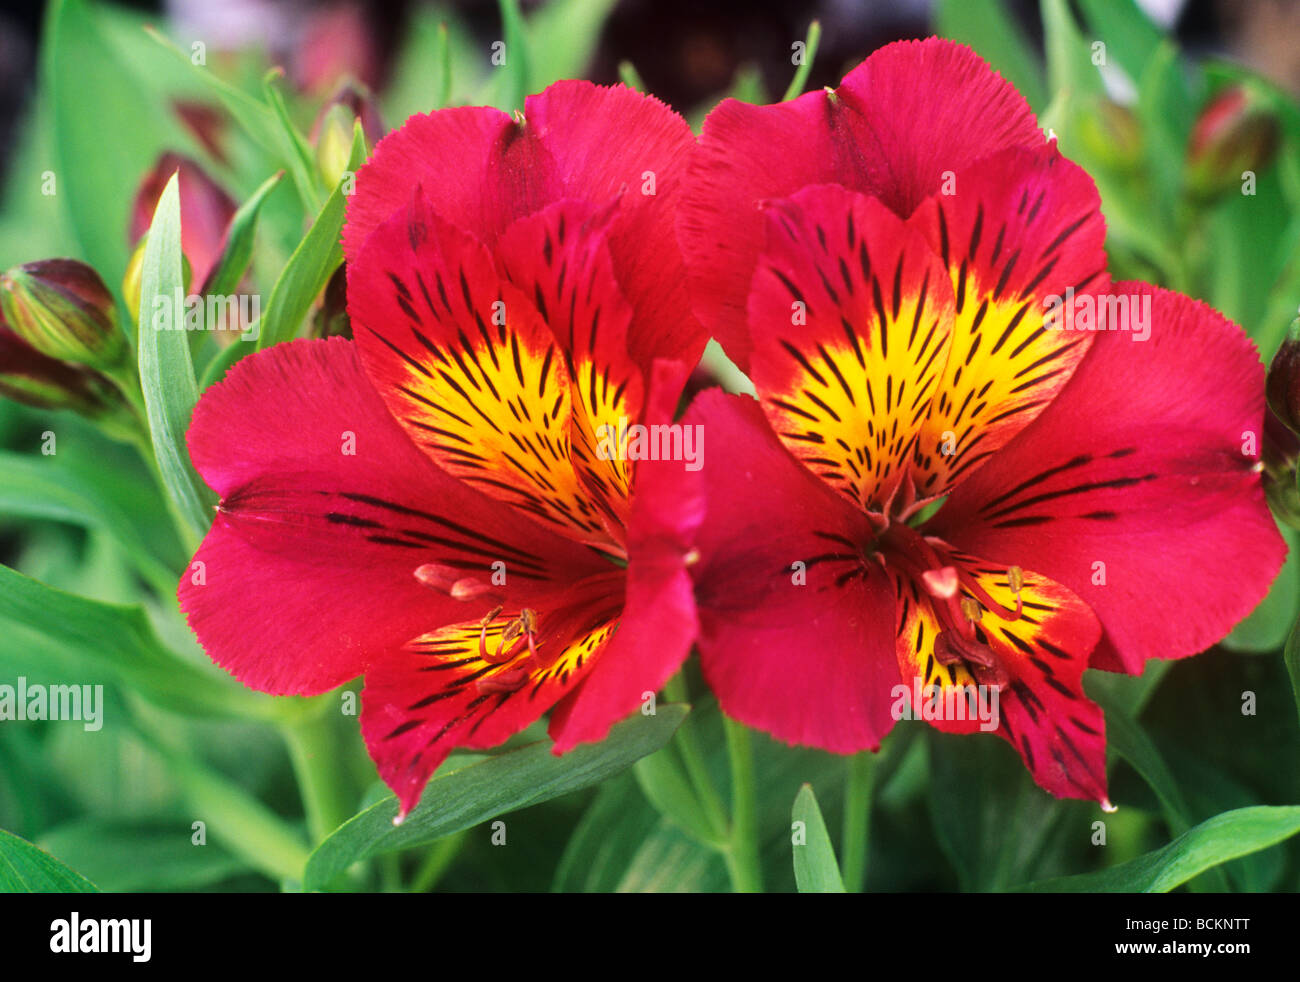 Alstroemeria Princess Oxana syn A Staprioxa red flower flowers Sto